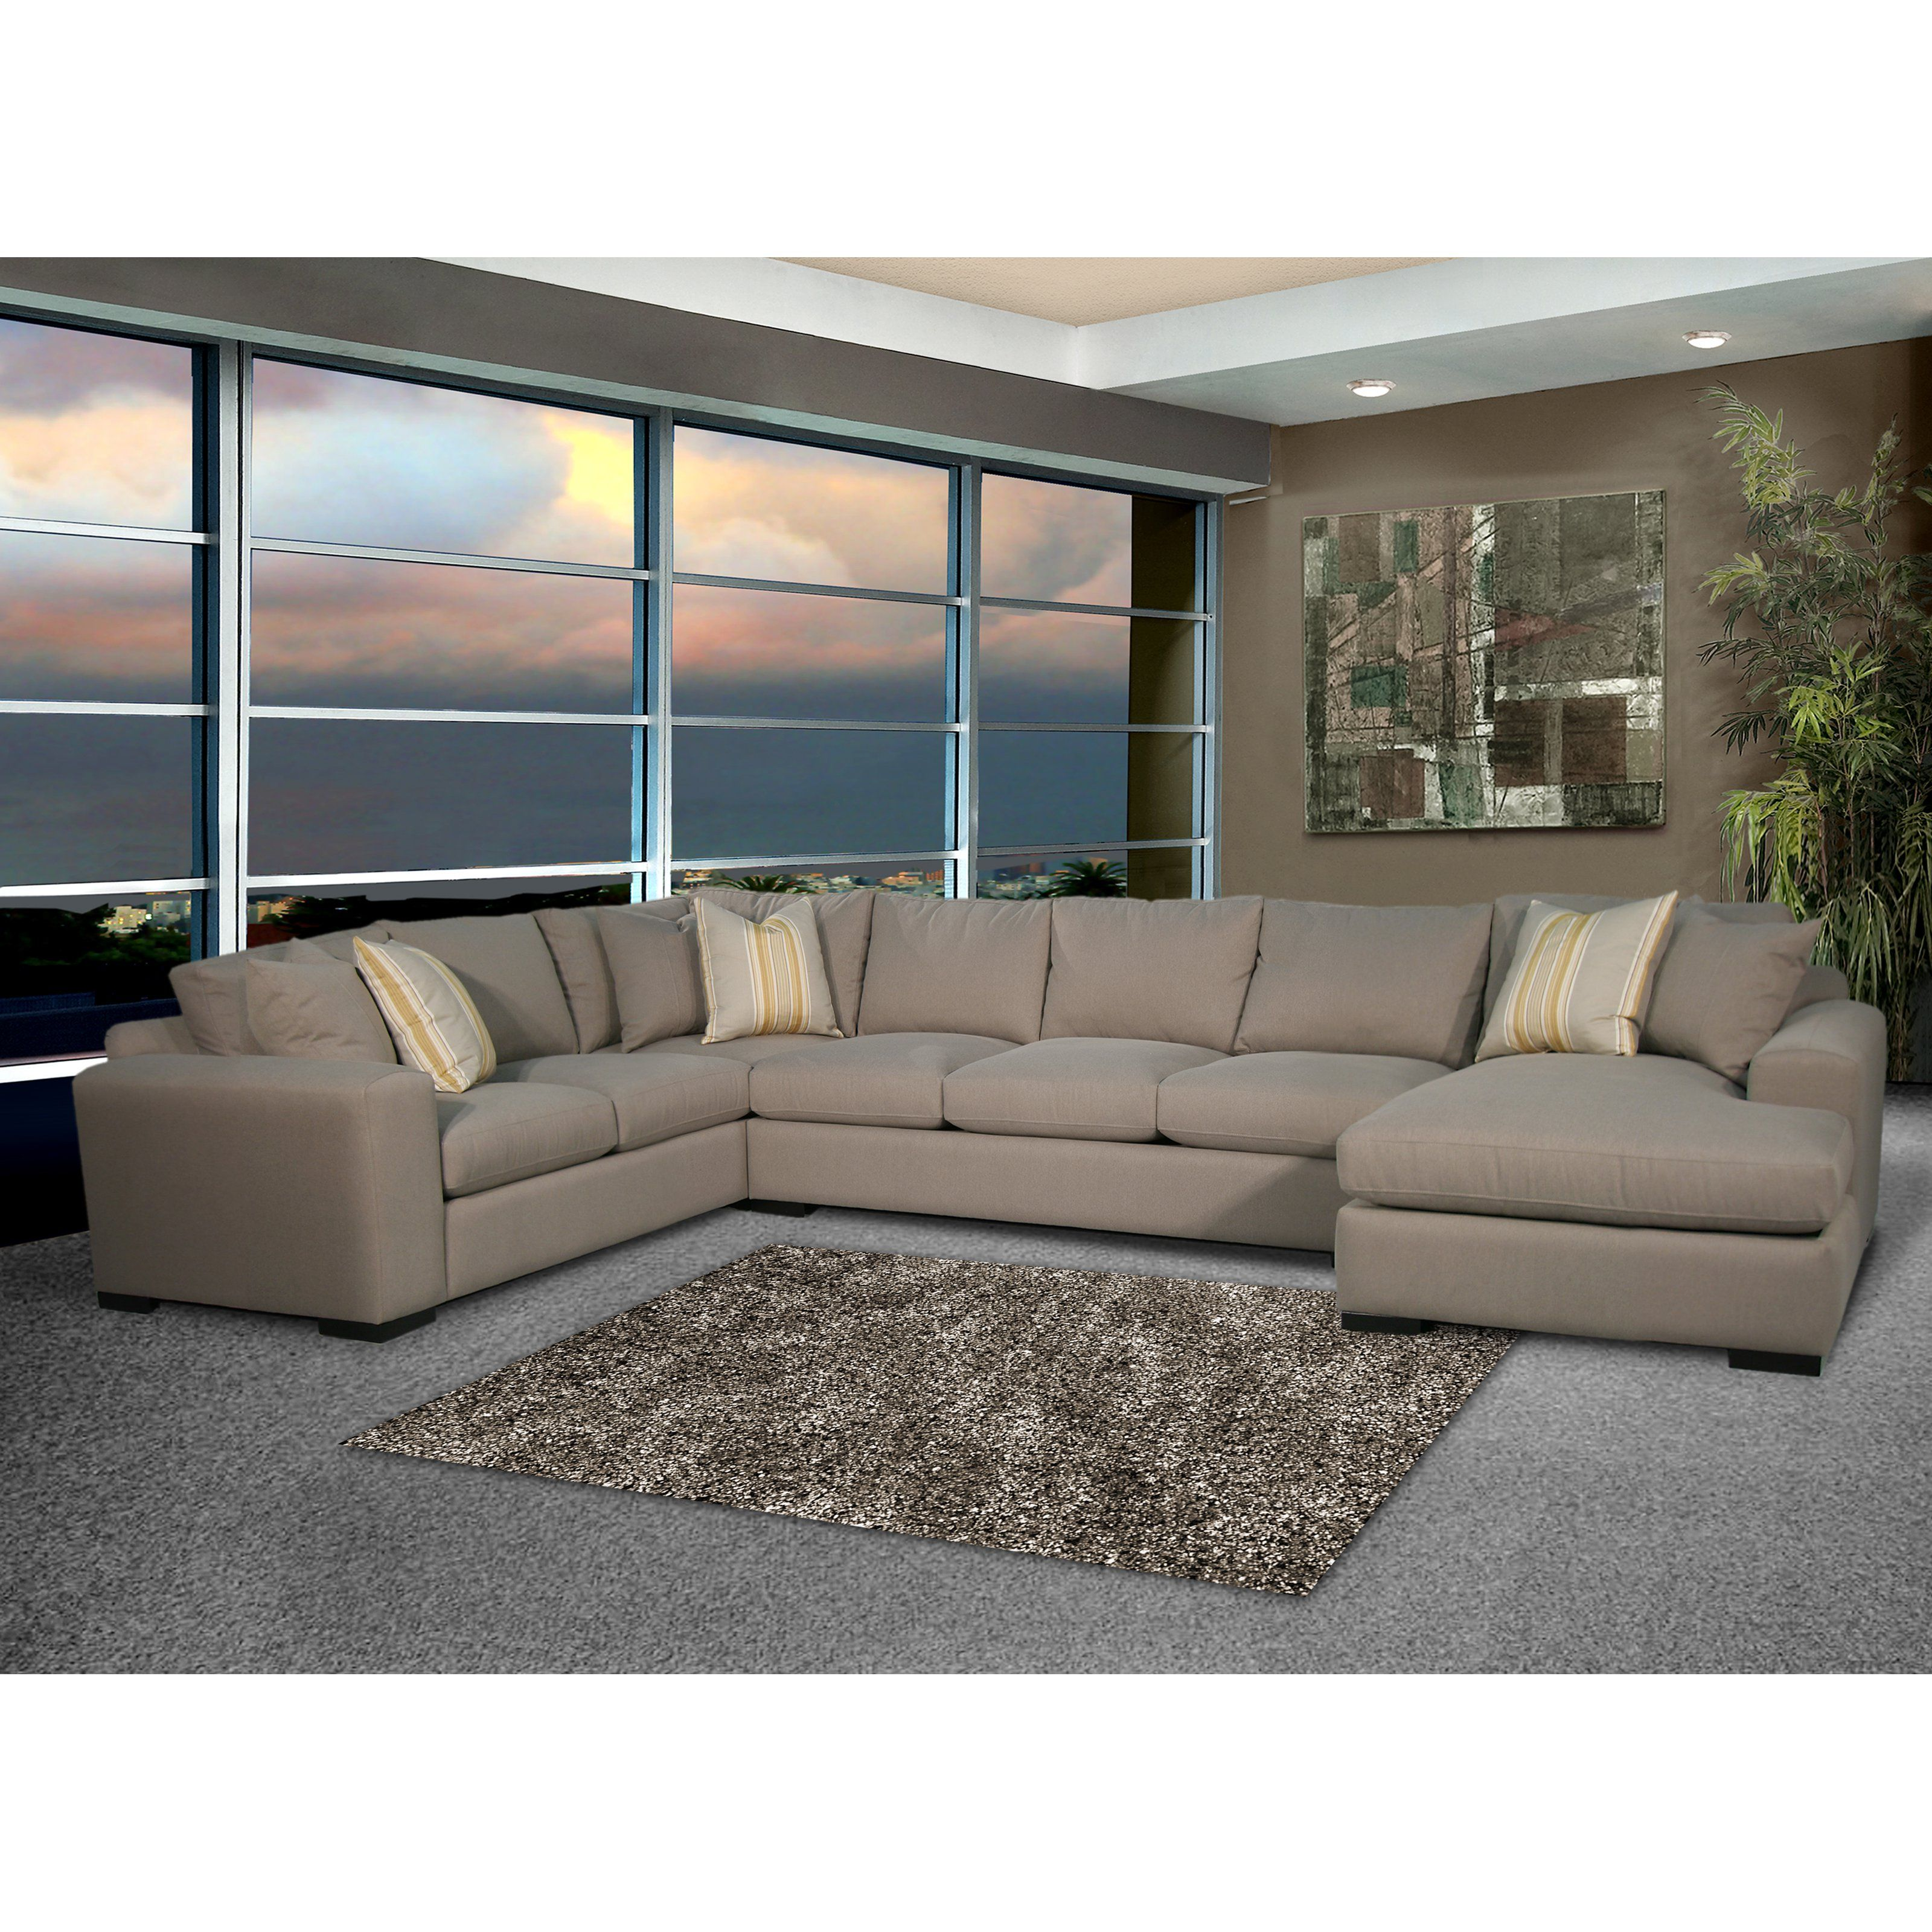 Fairmont Designs Venetzia 3-Piece Sectional Sofa with Chaise Lounge | from hayneedle.com  sc 1 st  Pinterest : chaise lounge sectional - Sectionals, Sofas & Couches